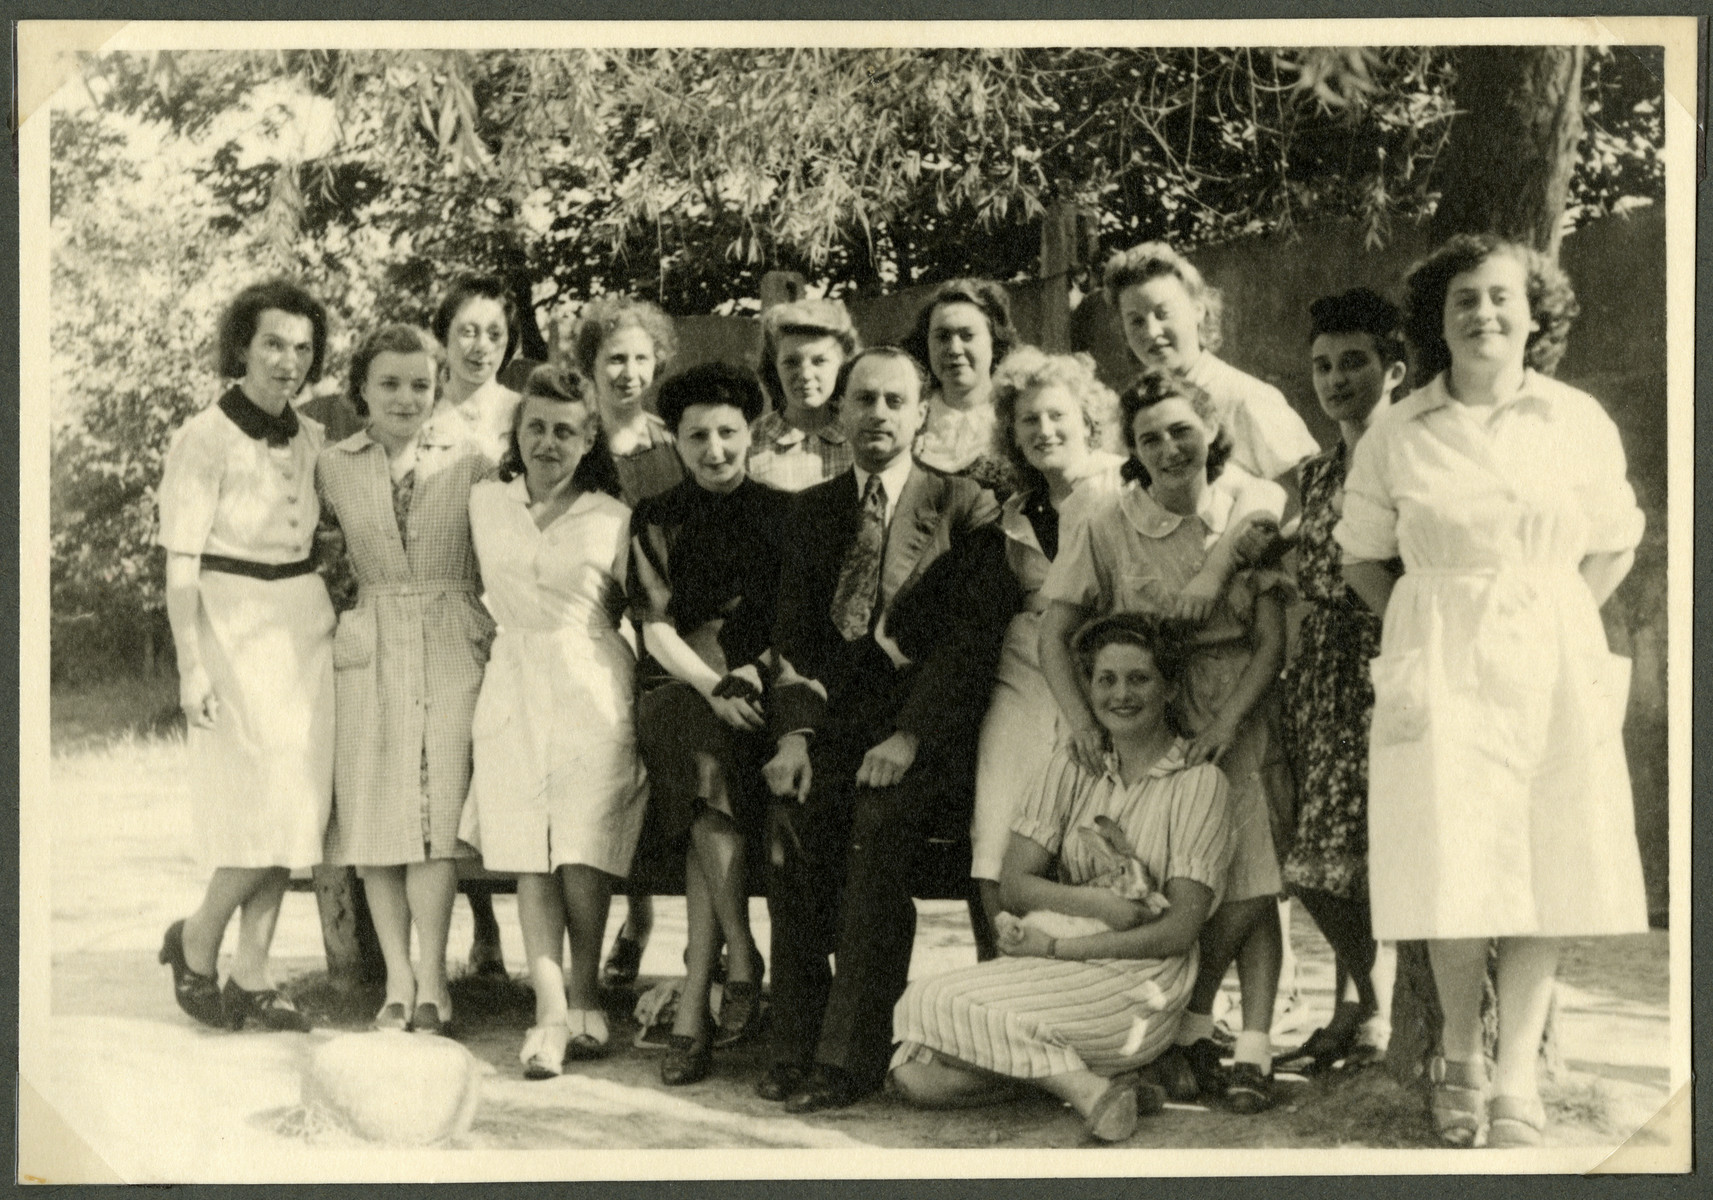 Group portrait of aid workers in what is [possibly the Nos Petits children's home].  Pictured in the center is Fela Perelman.